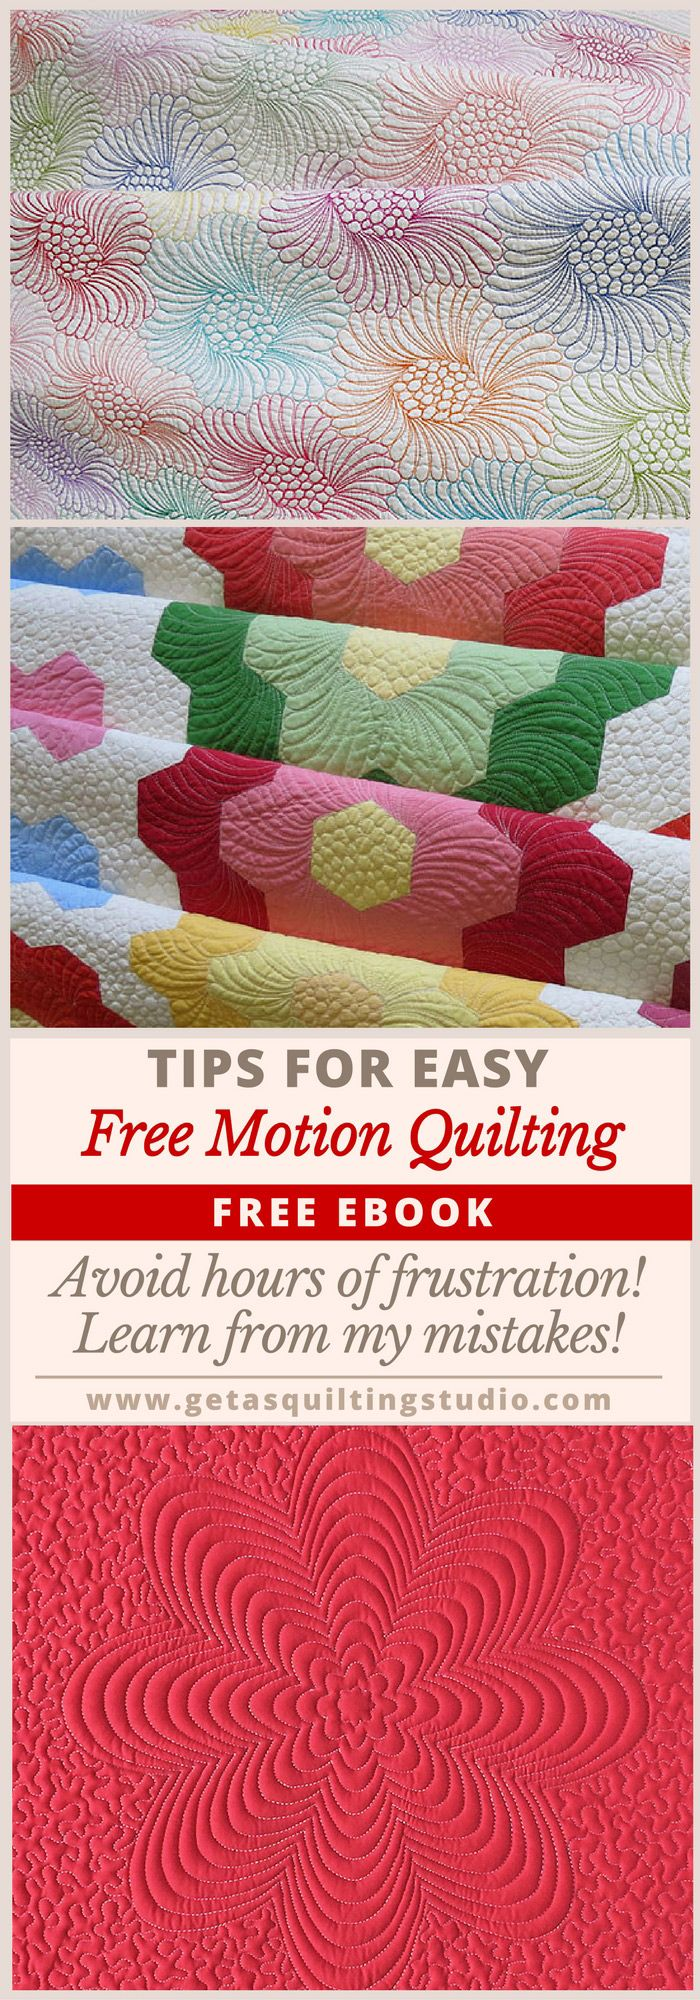 PRACTICE is not the only key to successful free motion quilting! Click through to download a free ebook with lots of tips for easy free motion quilting.